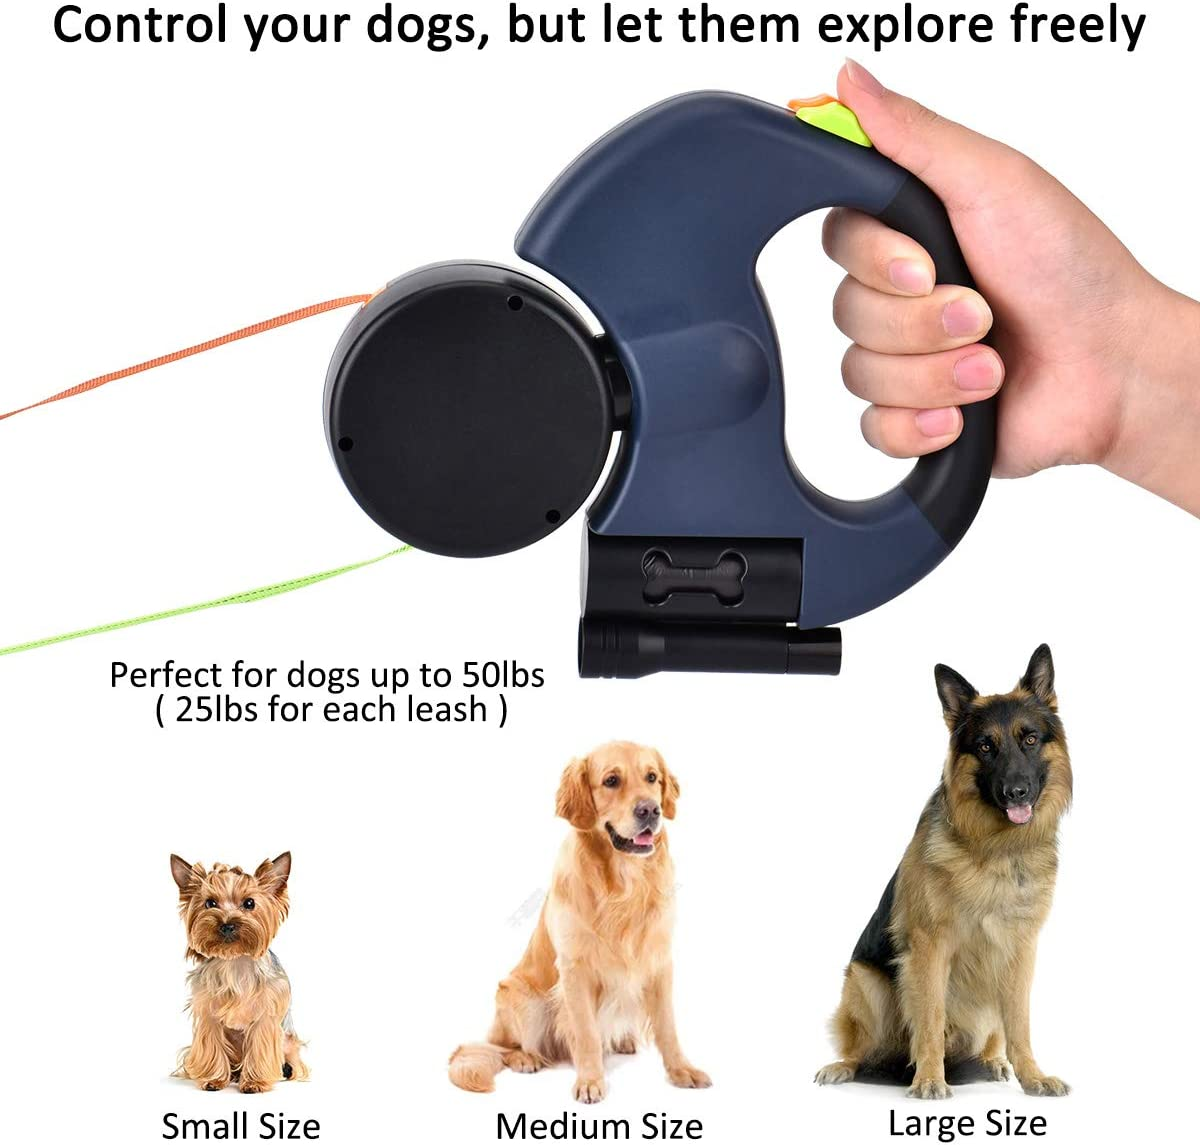 3M Flexible Retractable Dog Lead with Torch and Bin Bag Dispenser Nylon Queta Double Dog Leads ABS